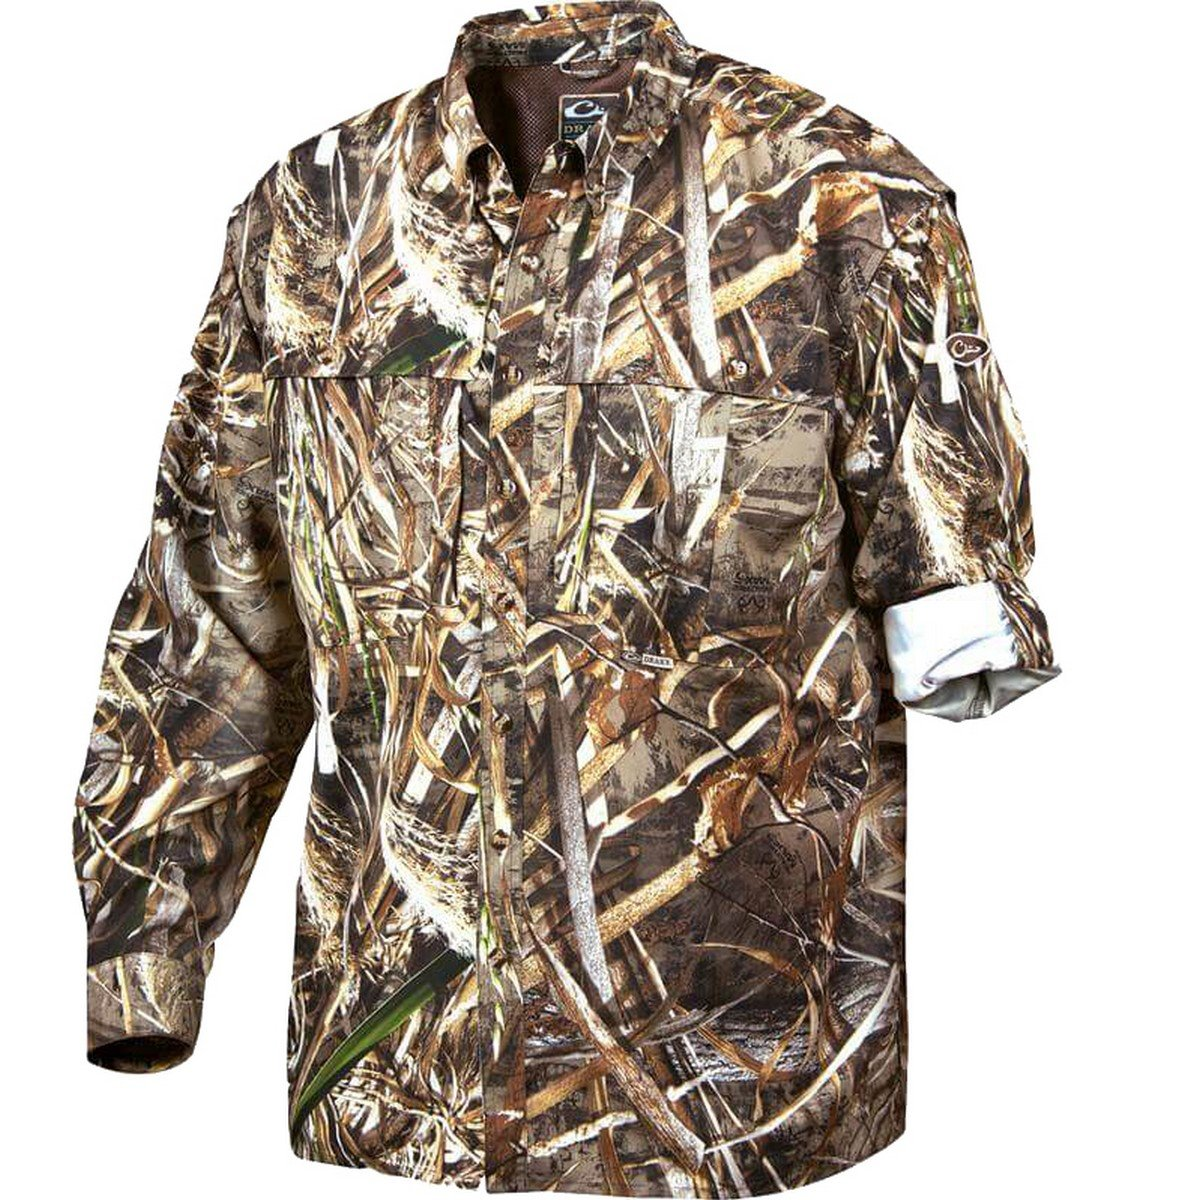 Drake Waterfowl Men's LST L/S Camo Vented Wingshooter's Shirt (Small) by Drake Waterfowl